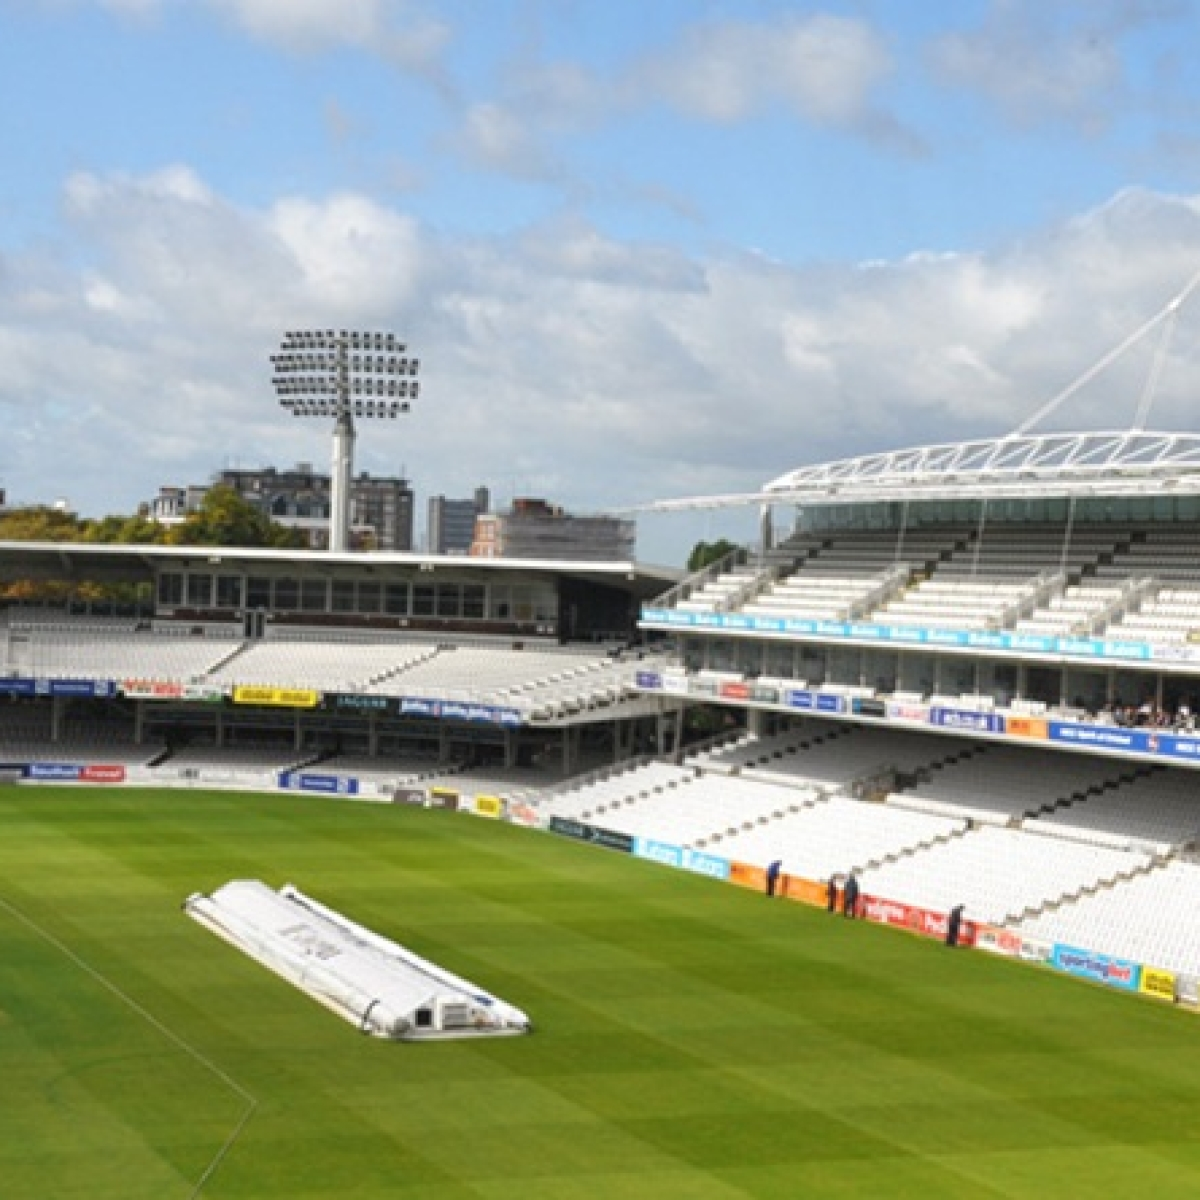 New Zealand vs England World Cup 2019 Final London weather report: Sunny spells anticipated on both days of weekend